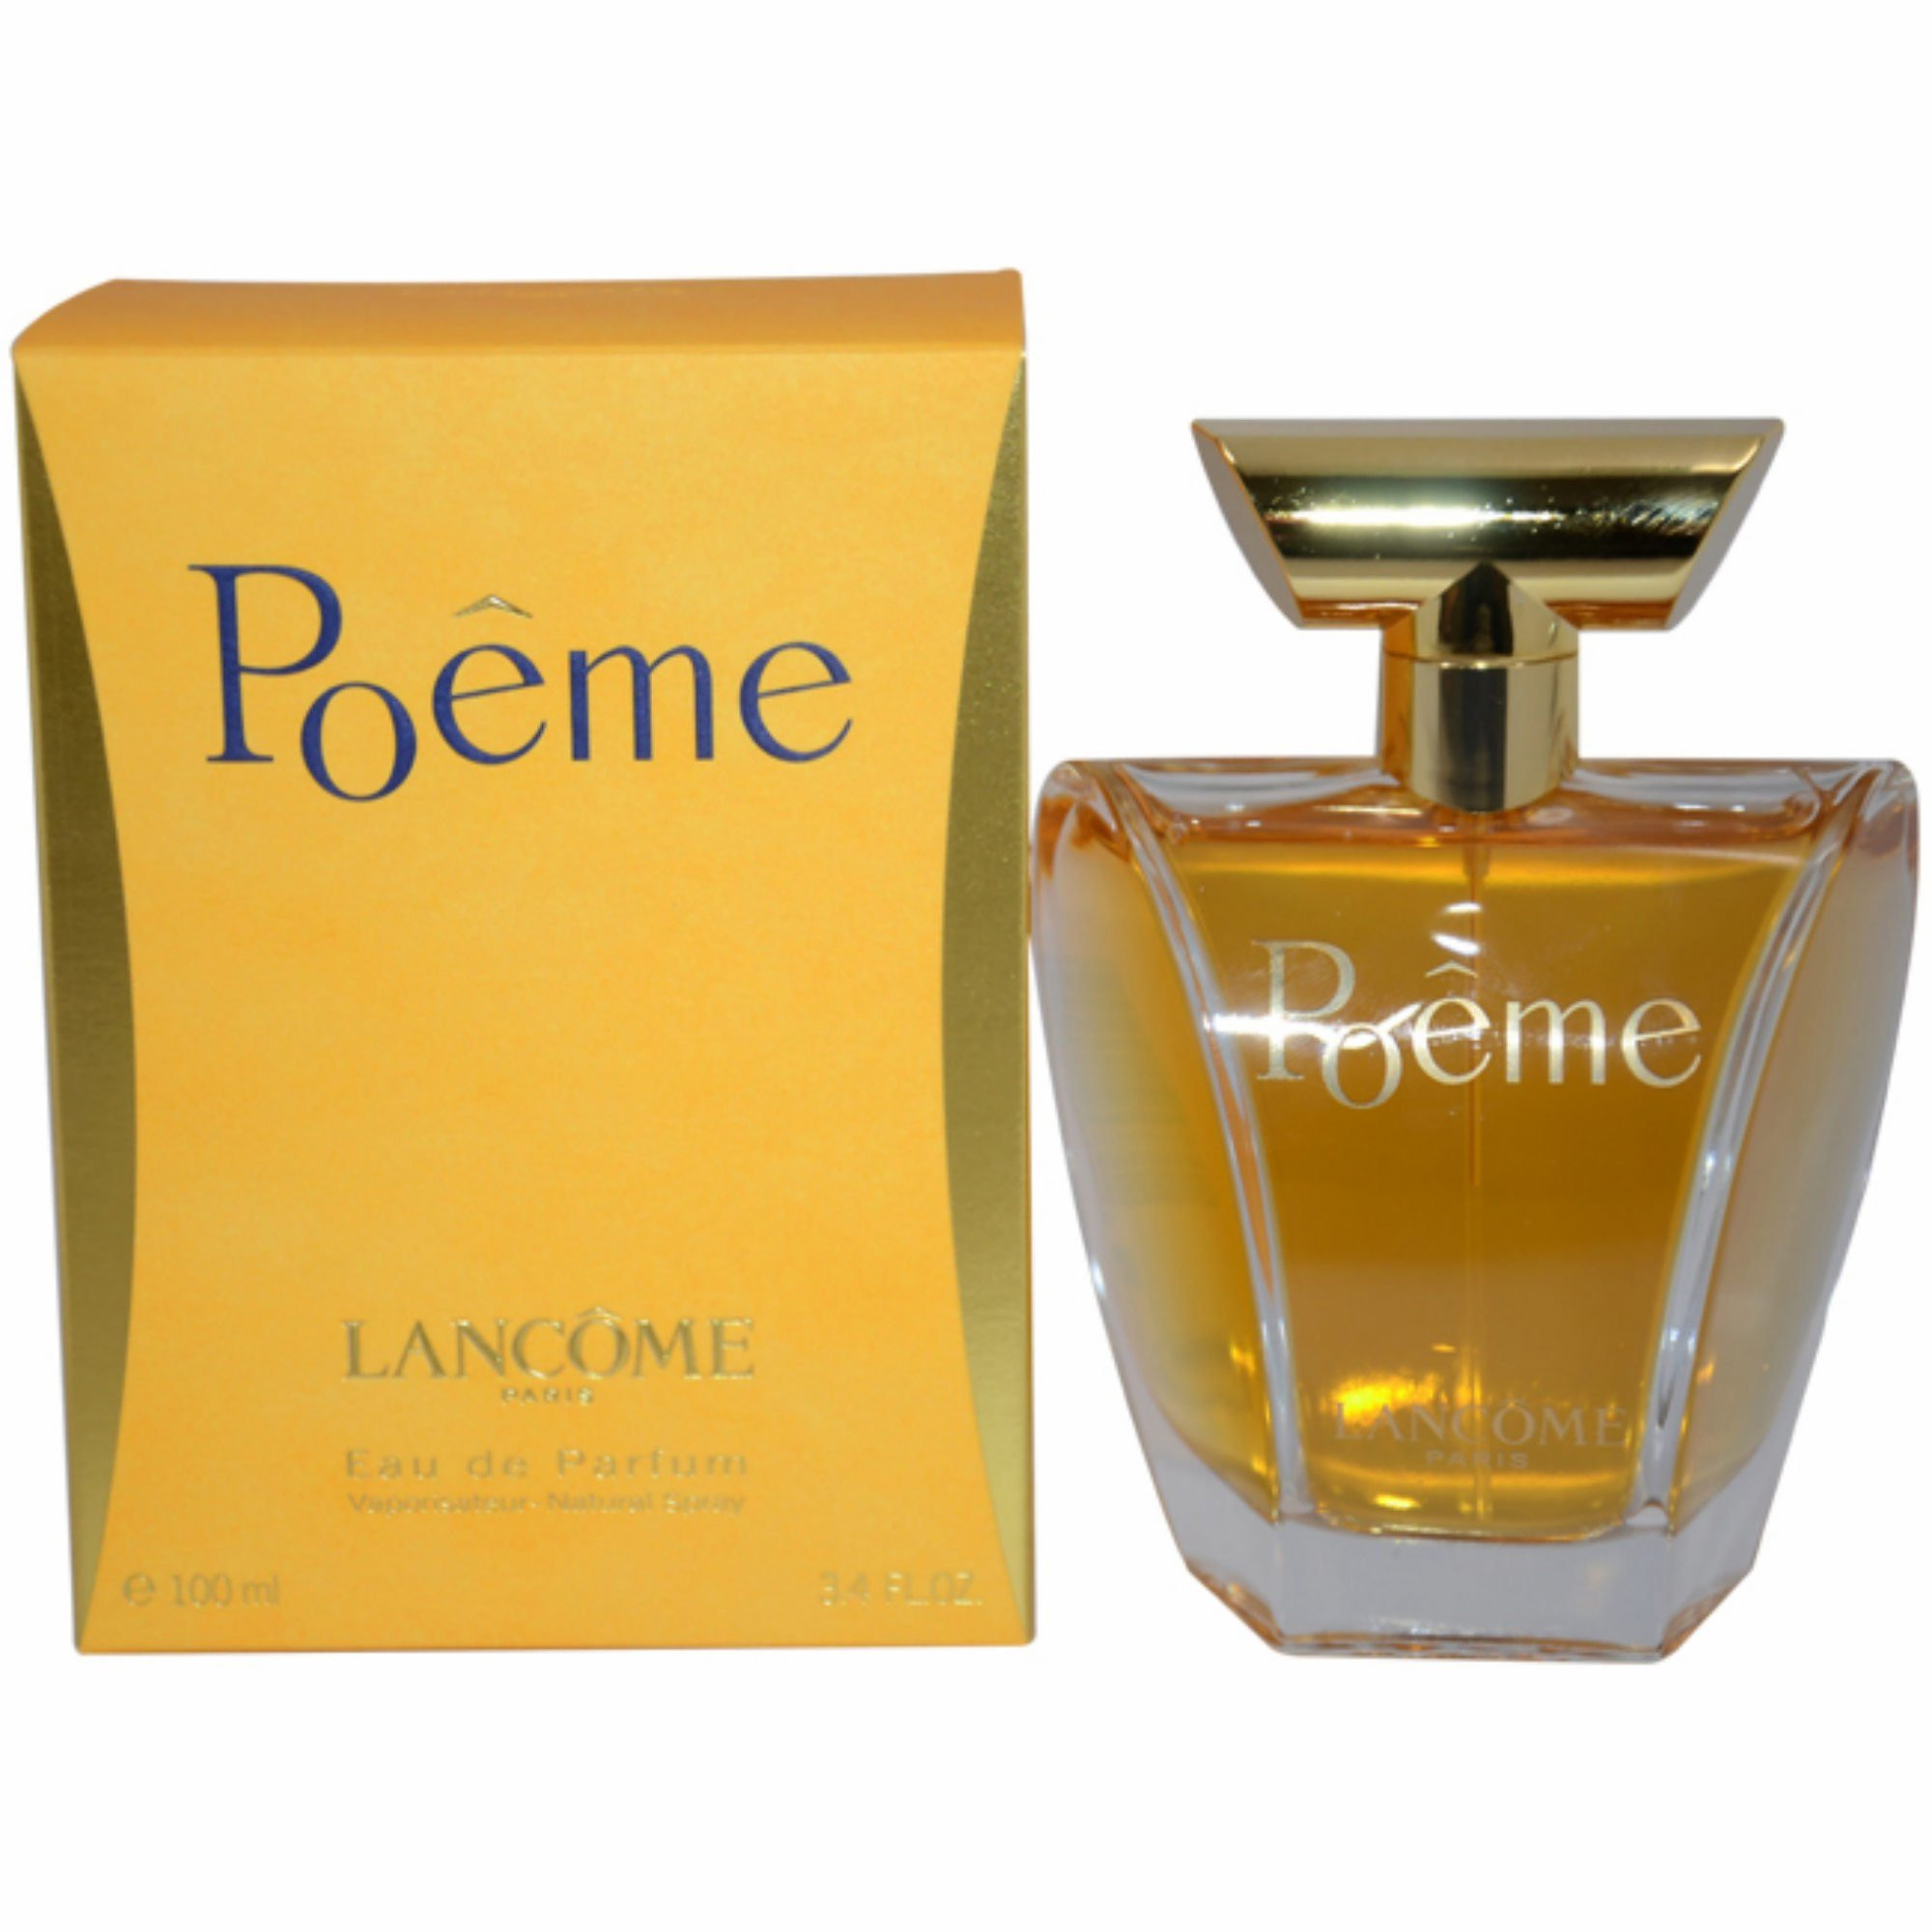 Cheap Poeme Lancome Find Poeme Lancome Deals On Line At